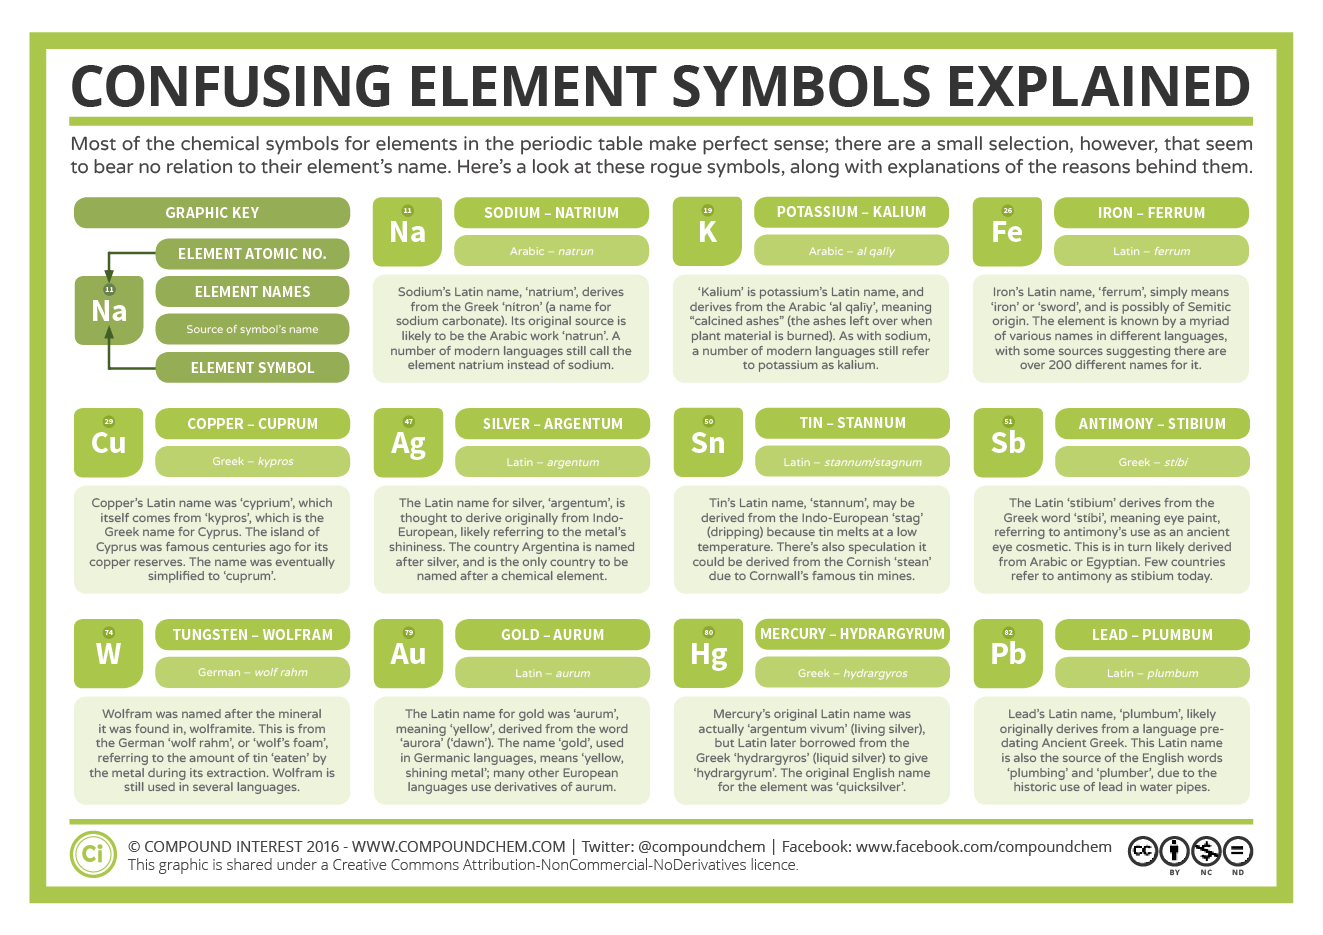 Compound interest element oddities 11 confusing chemical 11 confusing chemical element symbols explained urtaz Gallery